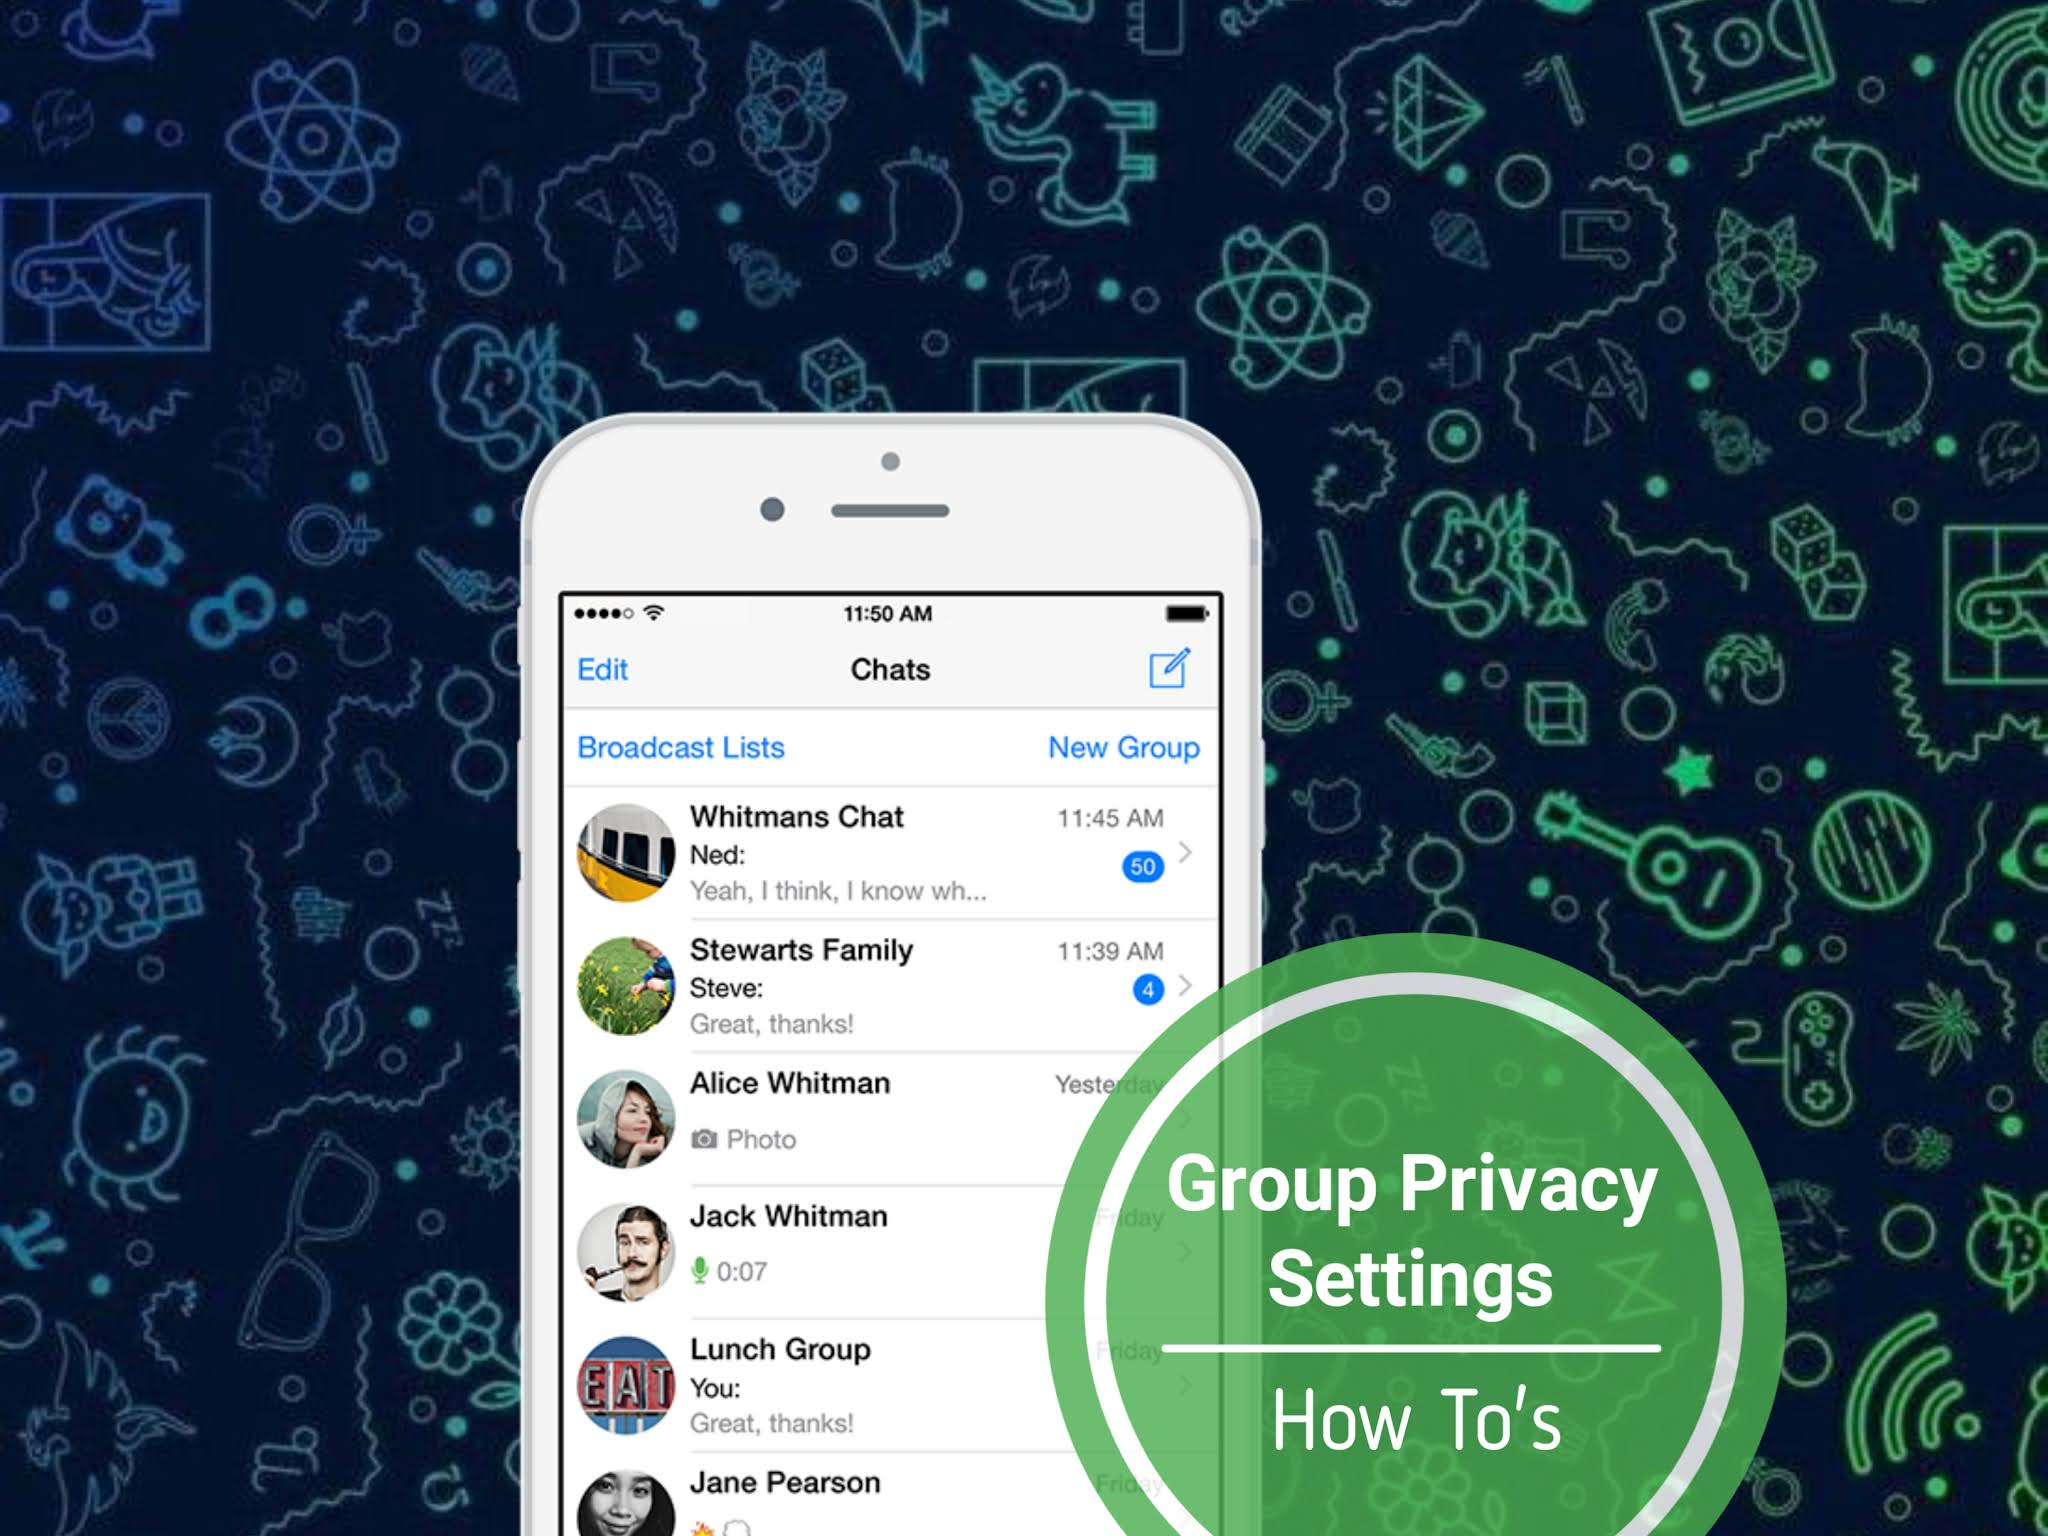 How To Restrict People From Adding You To WhatsApp Group Without Your Permission